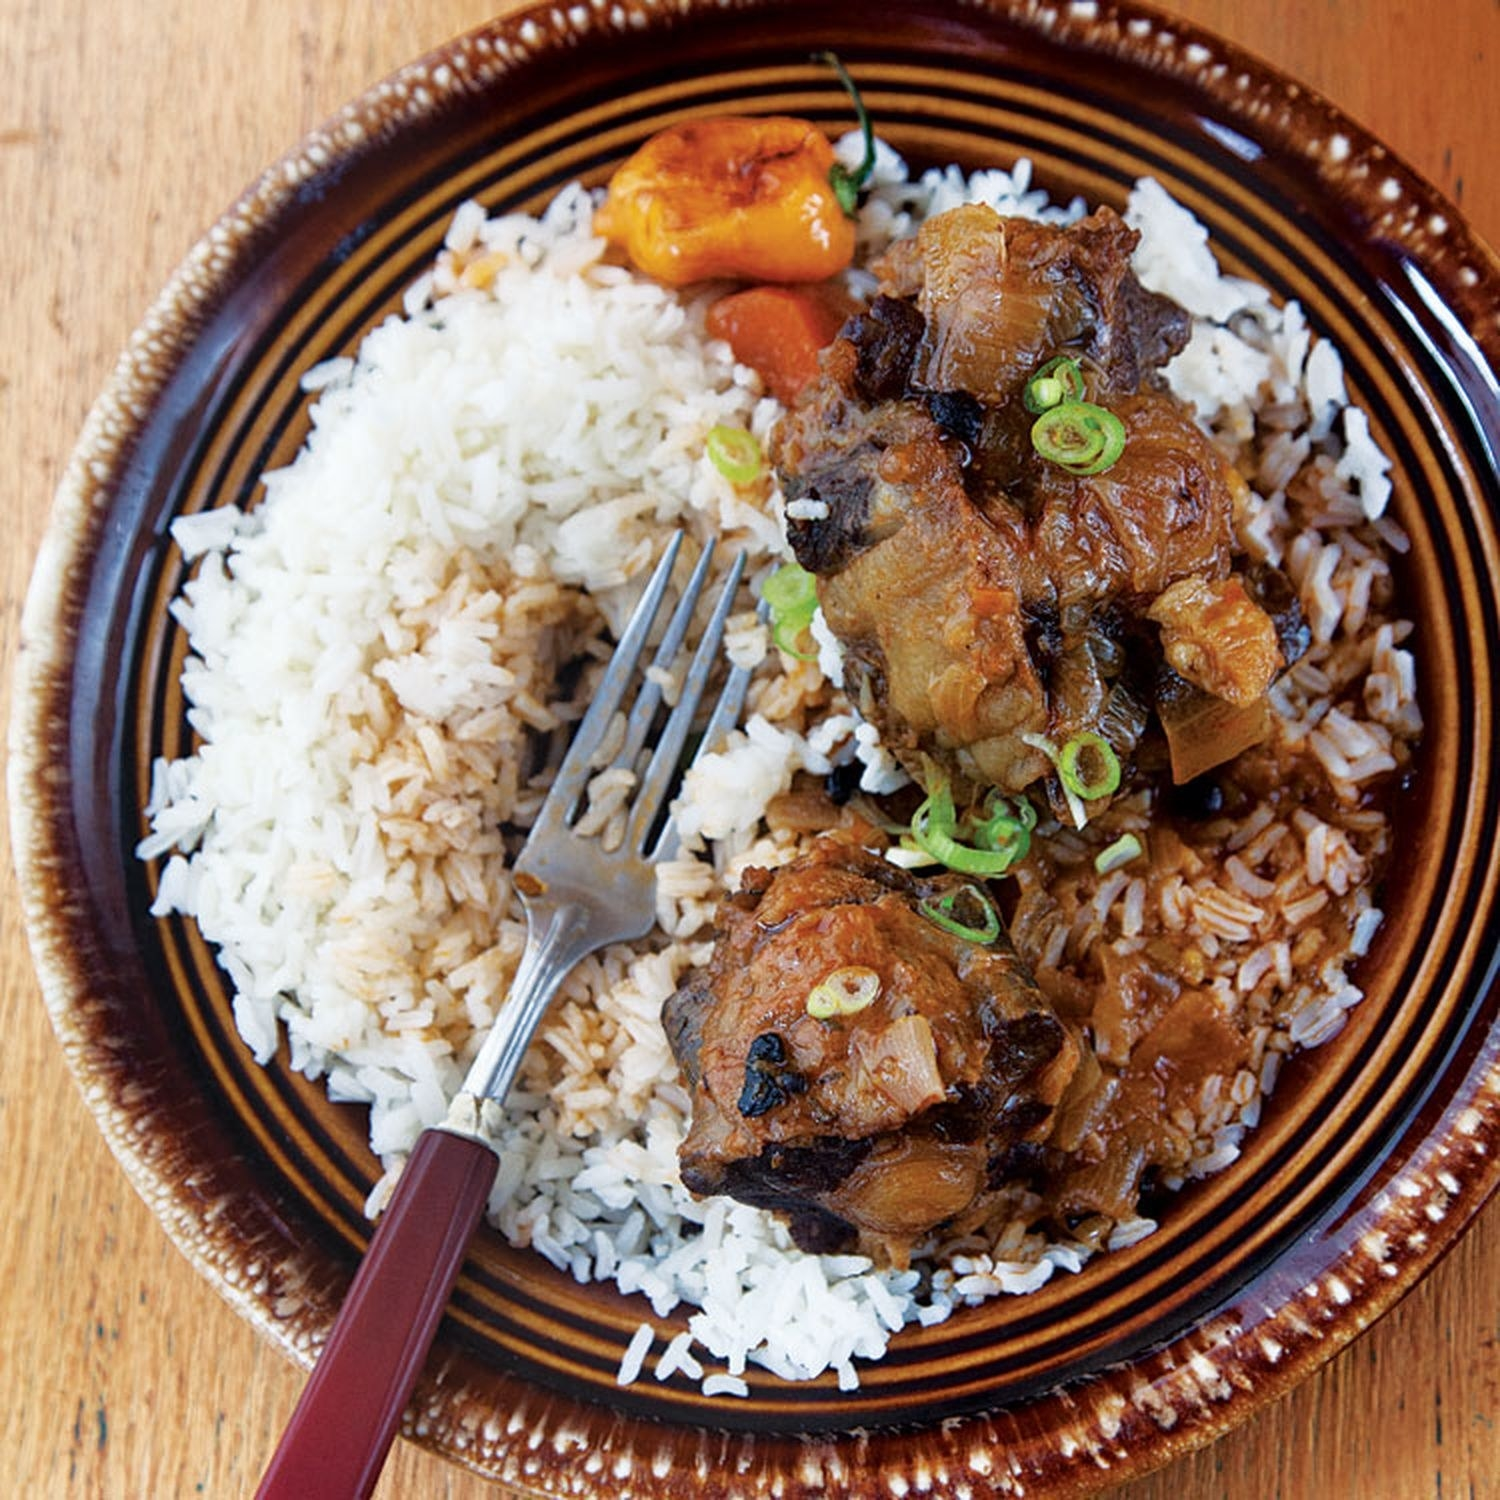 A plate of oxtail stew with a side of white rice, garnished with fresh scallions.